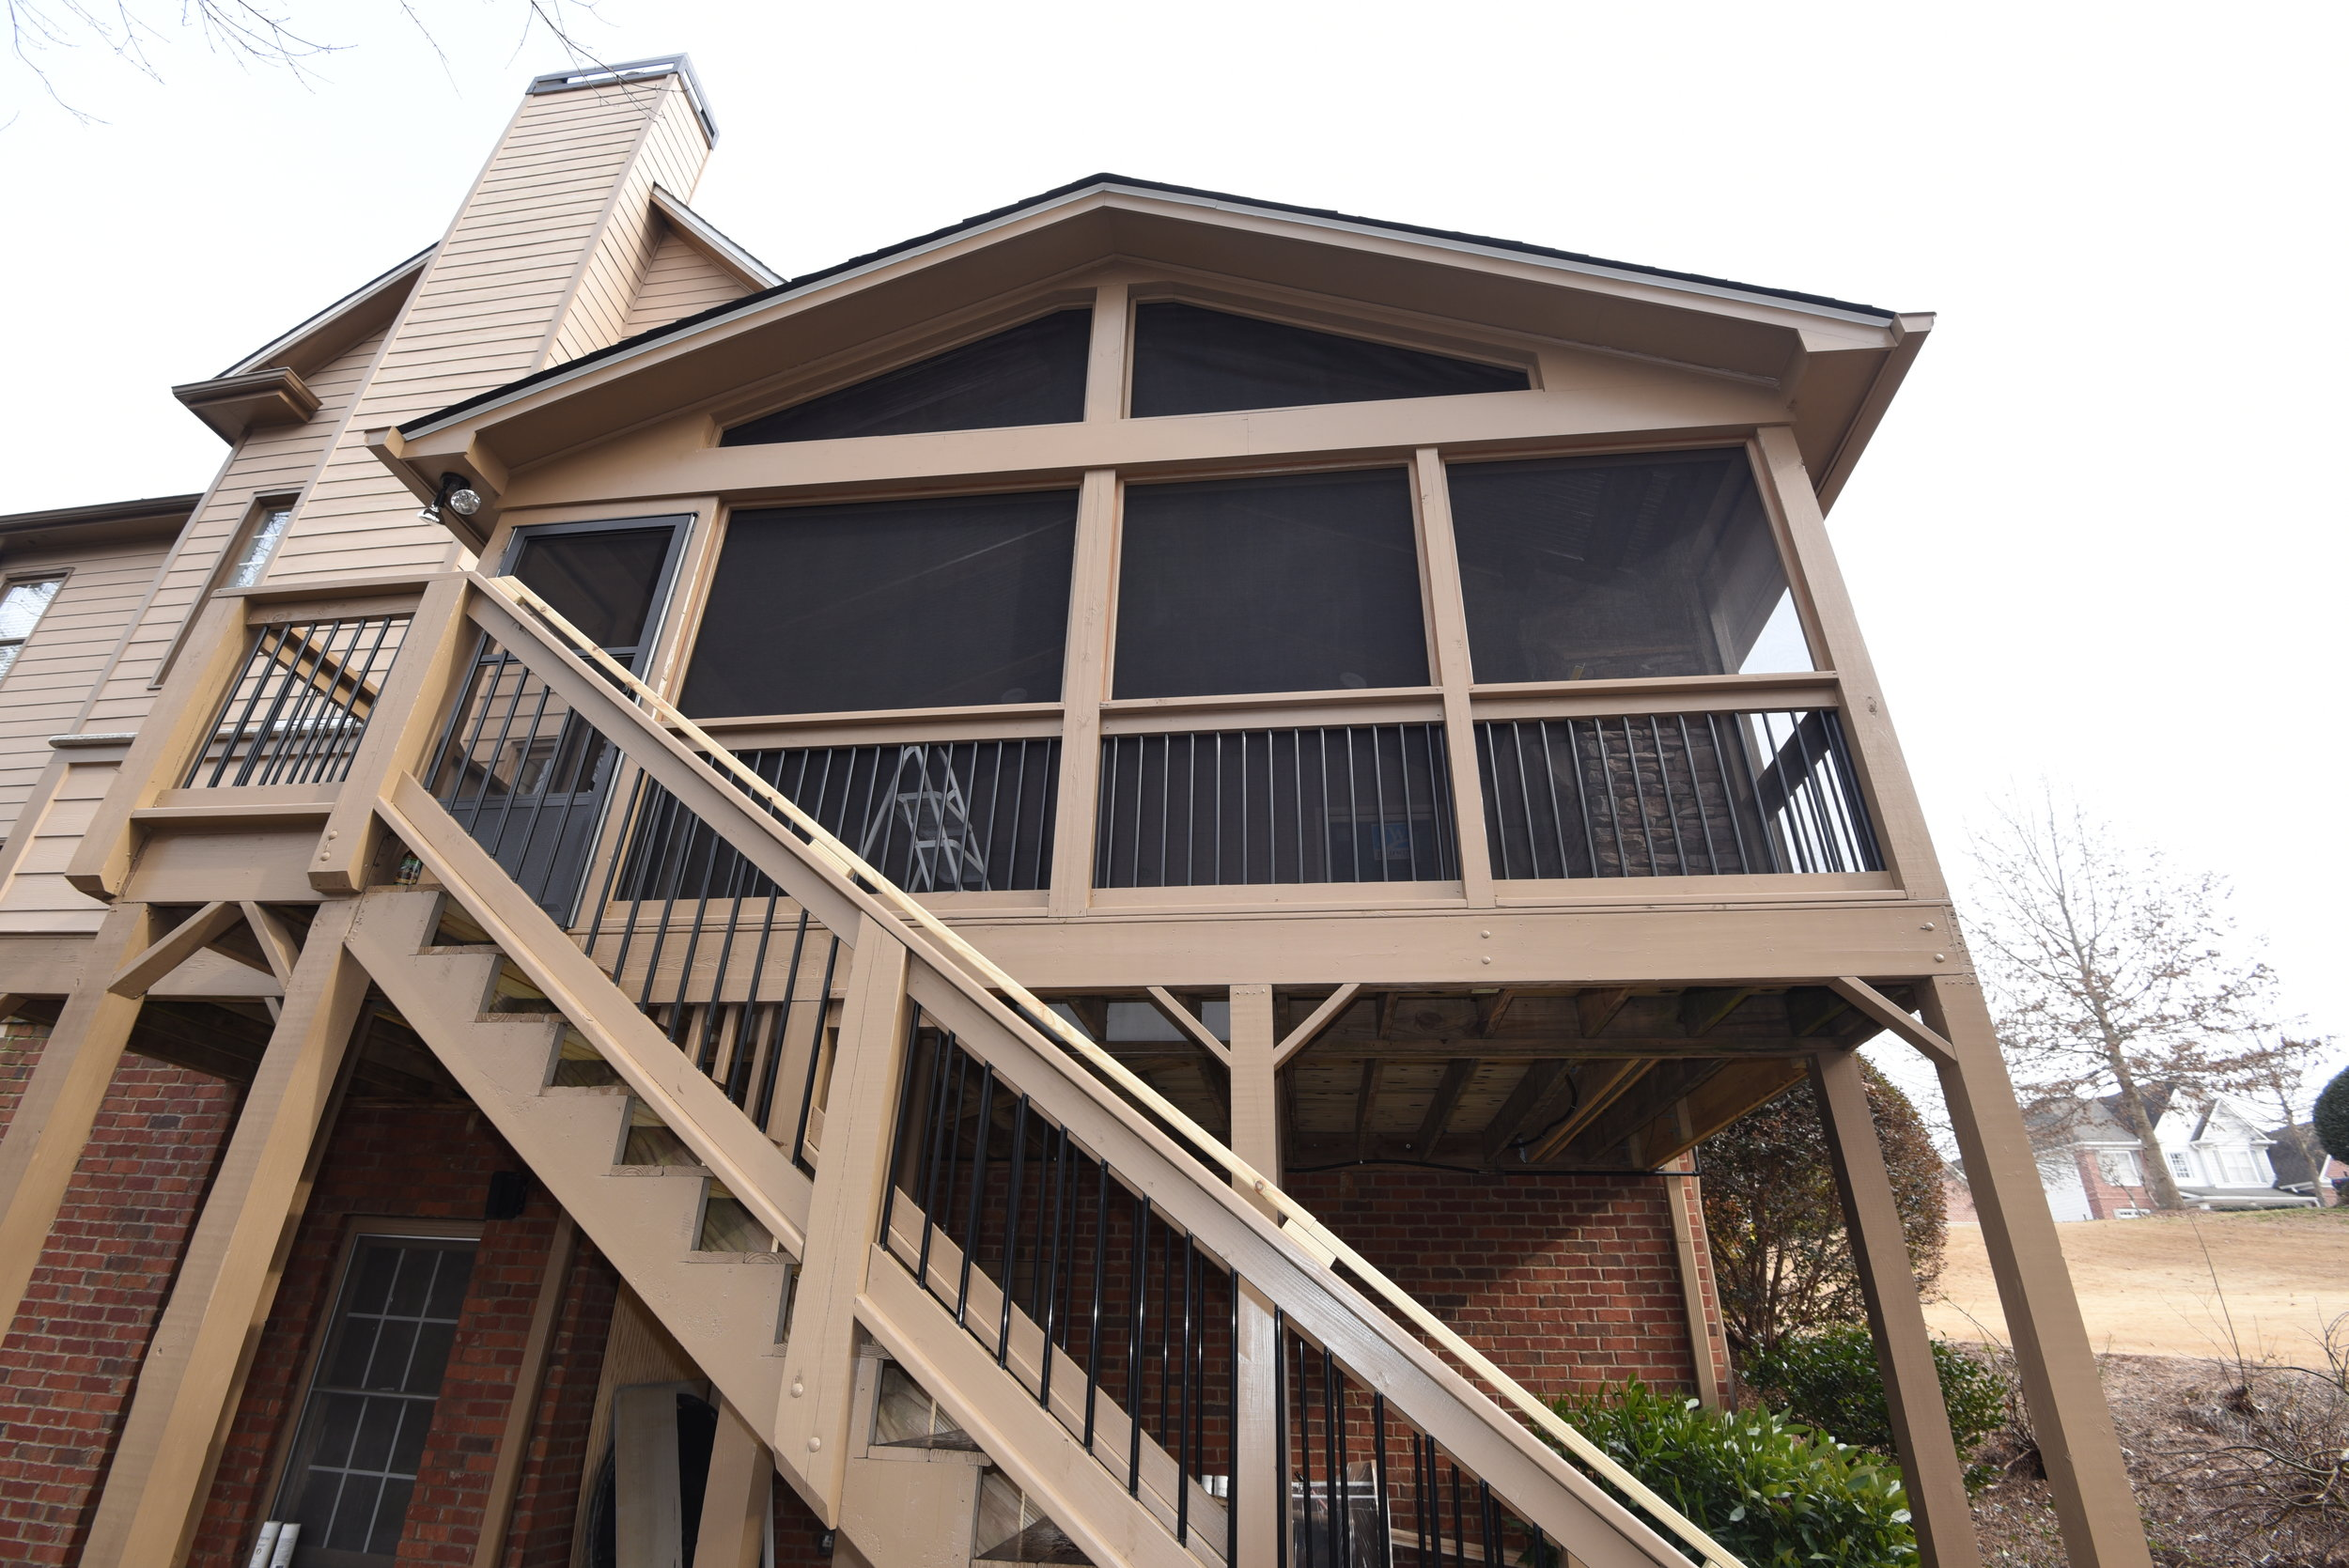 Sunroom & Screen Porch - A four-season room is the ideal way to add beauty, value, and functional living space to your home in Roswell, GA. This cost-effective addition allows you to relax under the stars, enjoy the soothing sounds of falling rain, and provide a safe, insect-free play area for children.